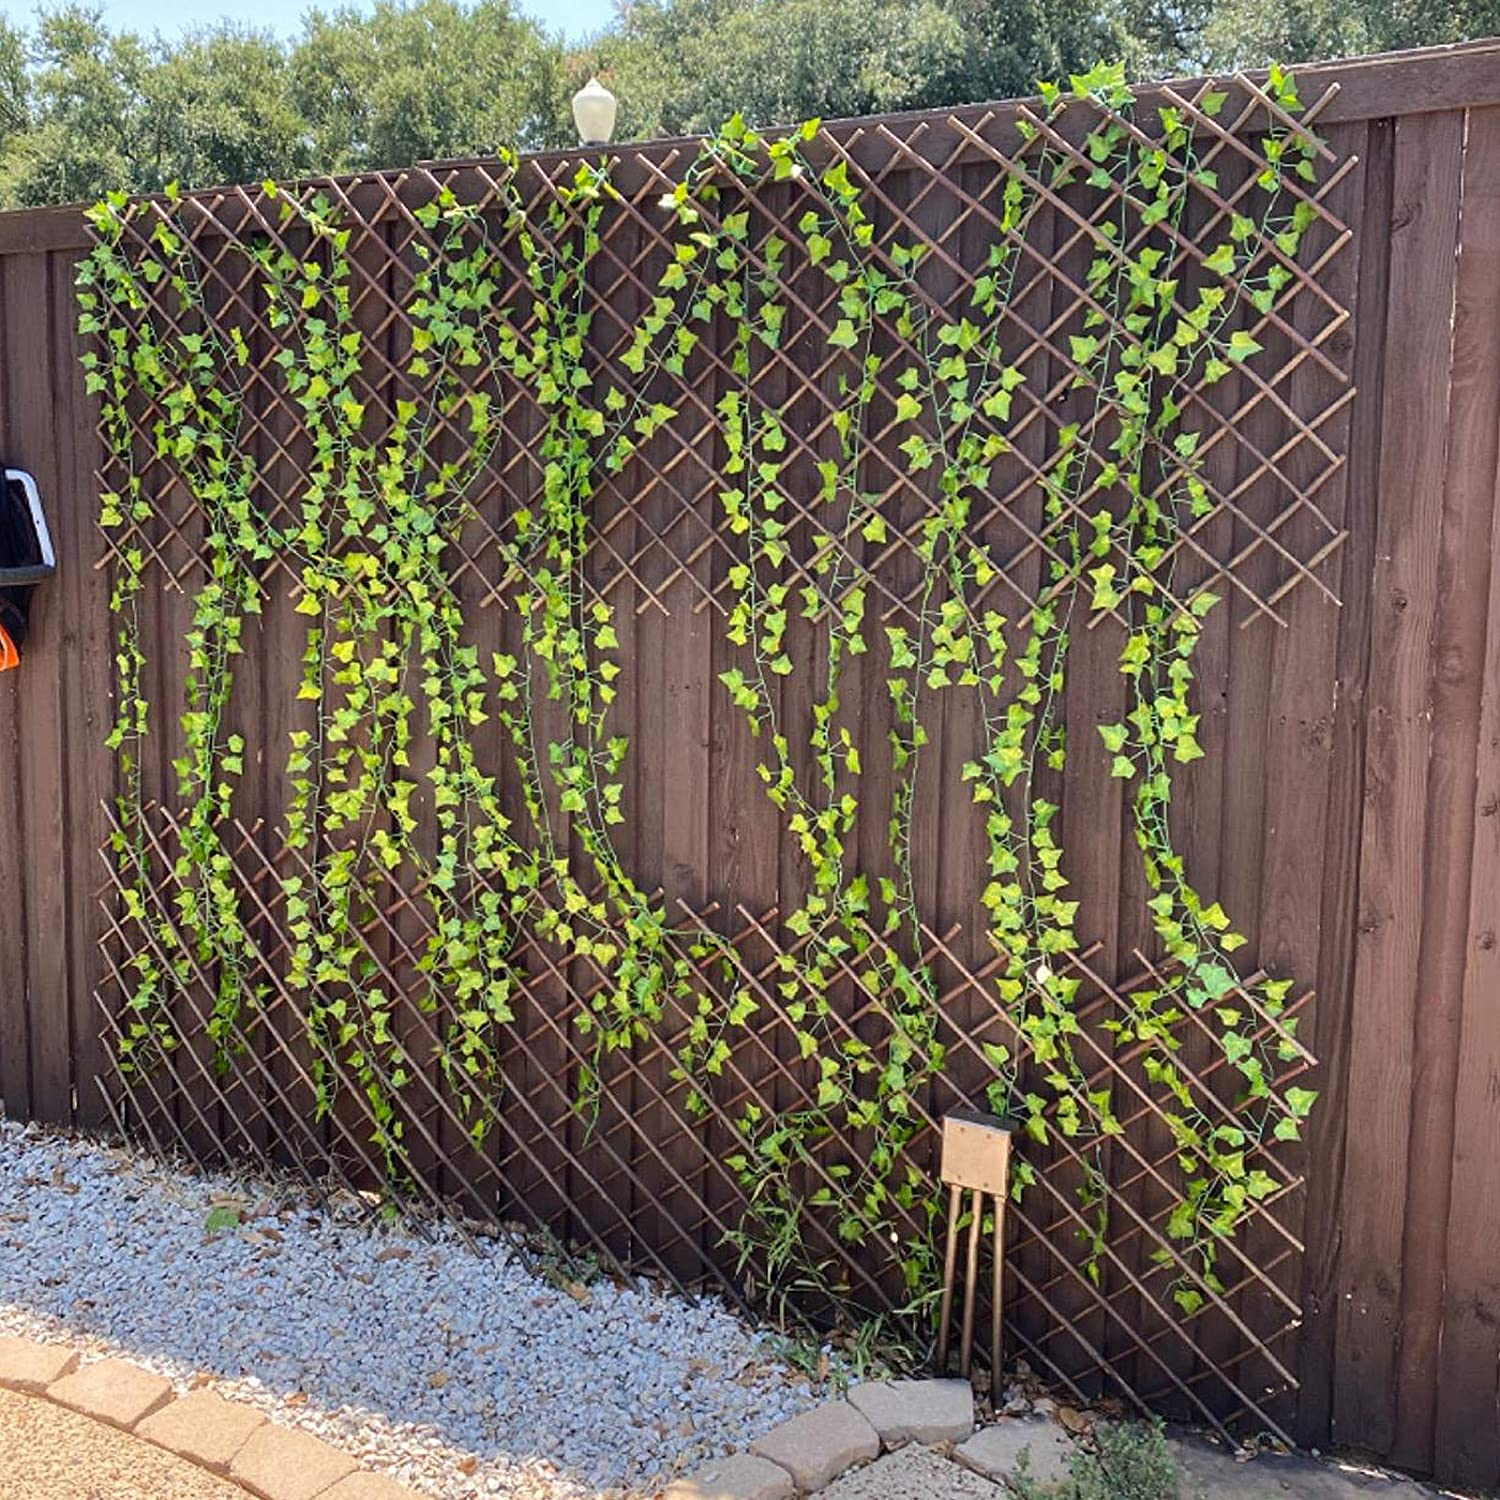 Expandable Garden Trellis Plant Support Willow Lattice Fence Panel for  Climbing Plants Vine Ivy Rose Cucumbers Clematis 20X20 Inch